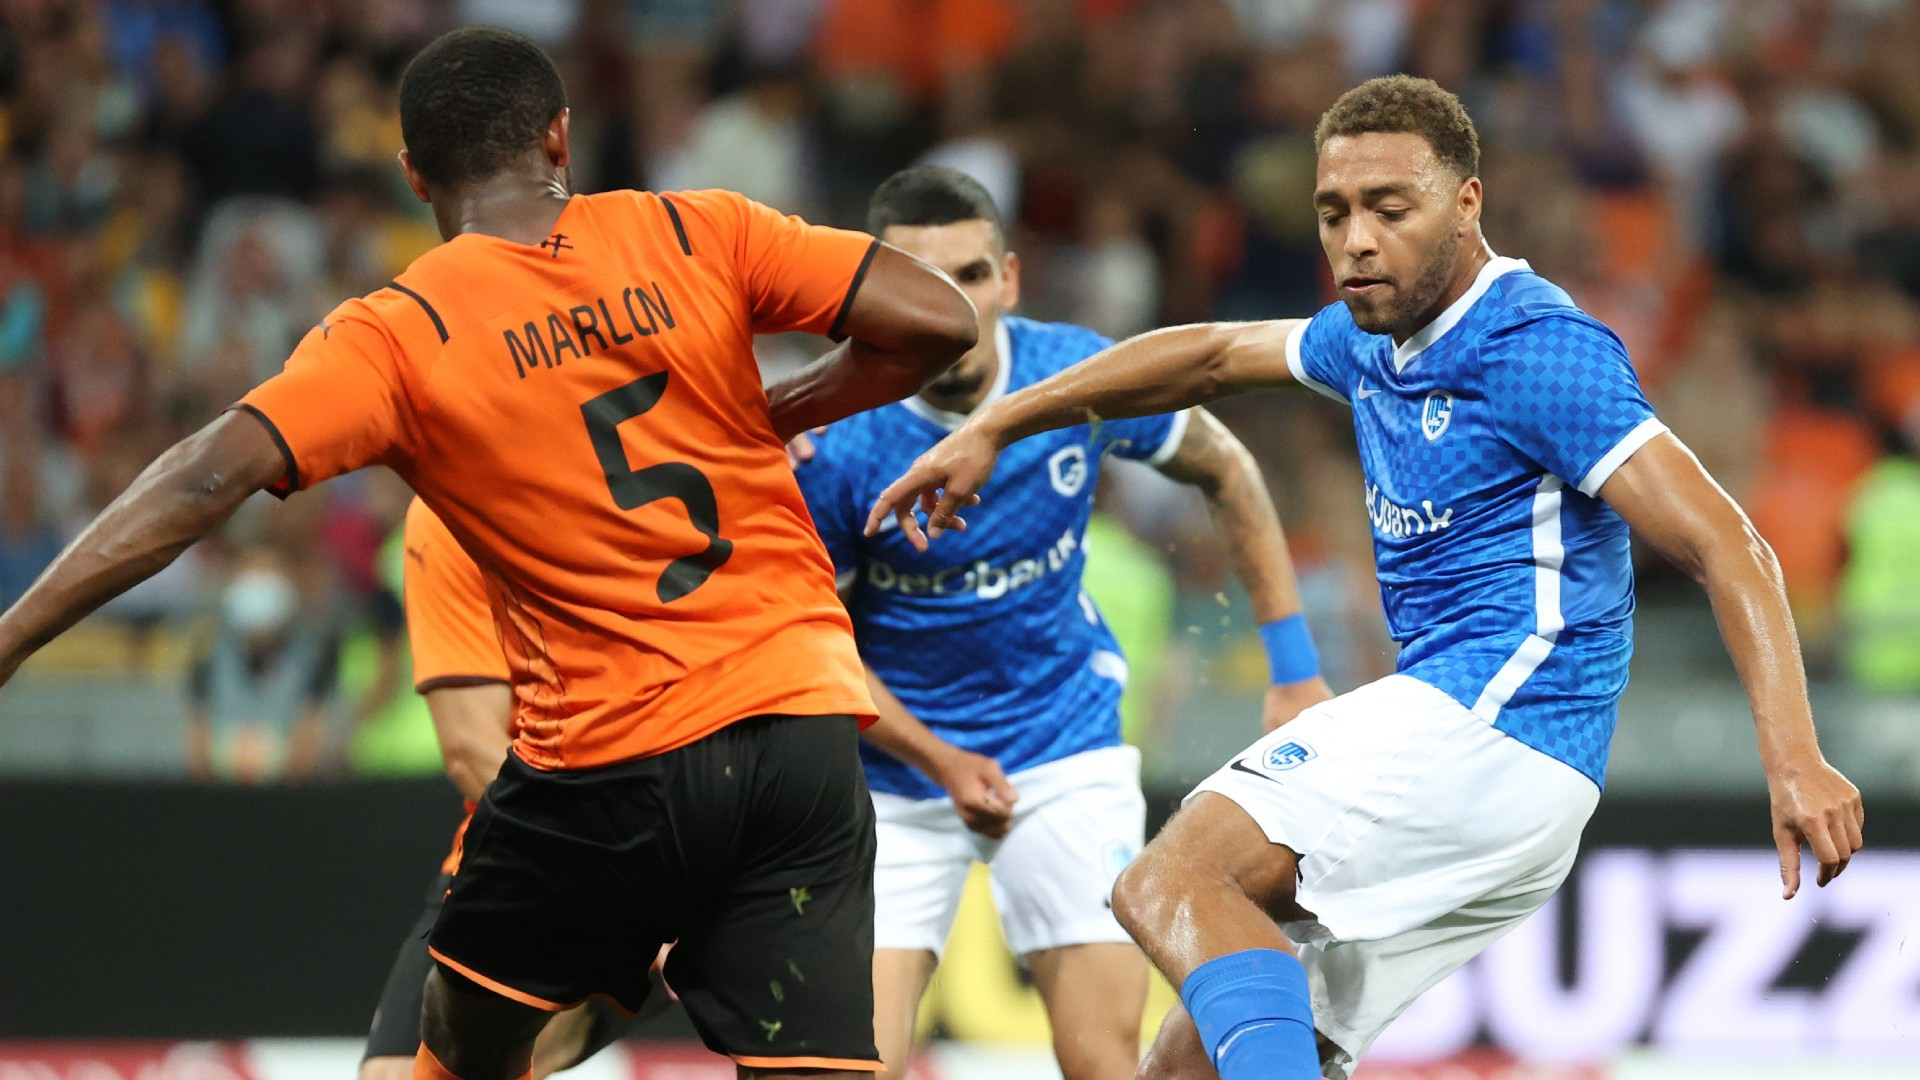 Dessers scores as Genk crash out of Champions League following Shakhtar Donetsk loss